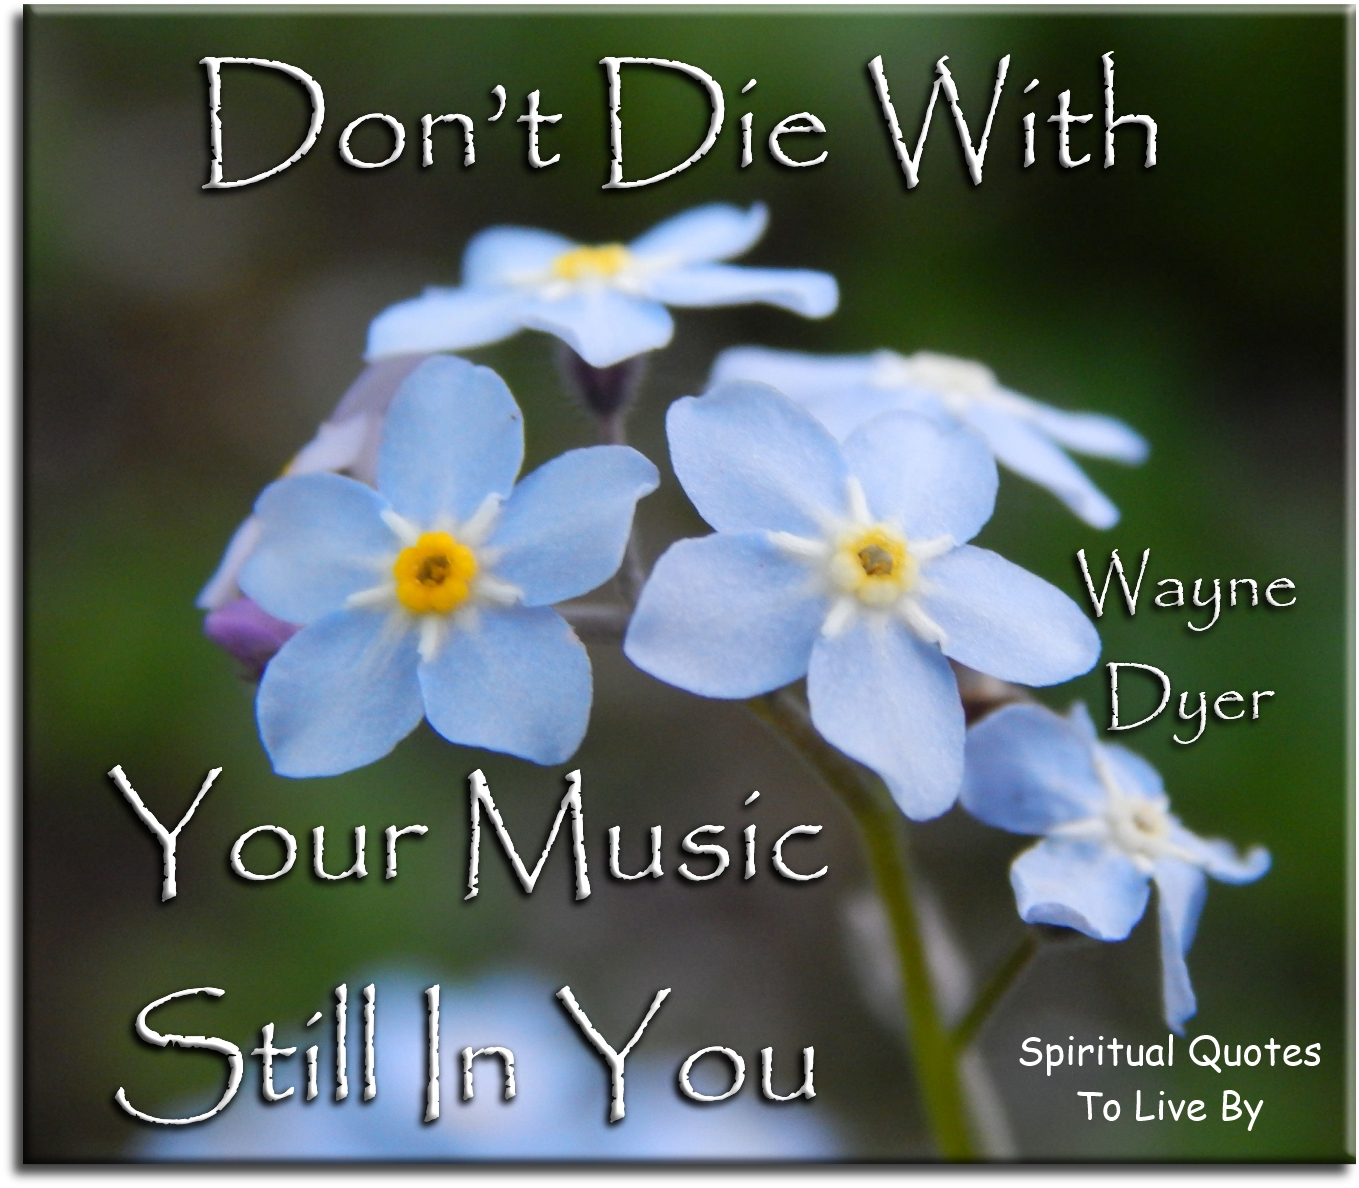 Don't die with your music still in you - Wayne Dyer - Spiritual Quotes To Live By